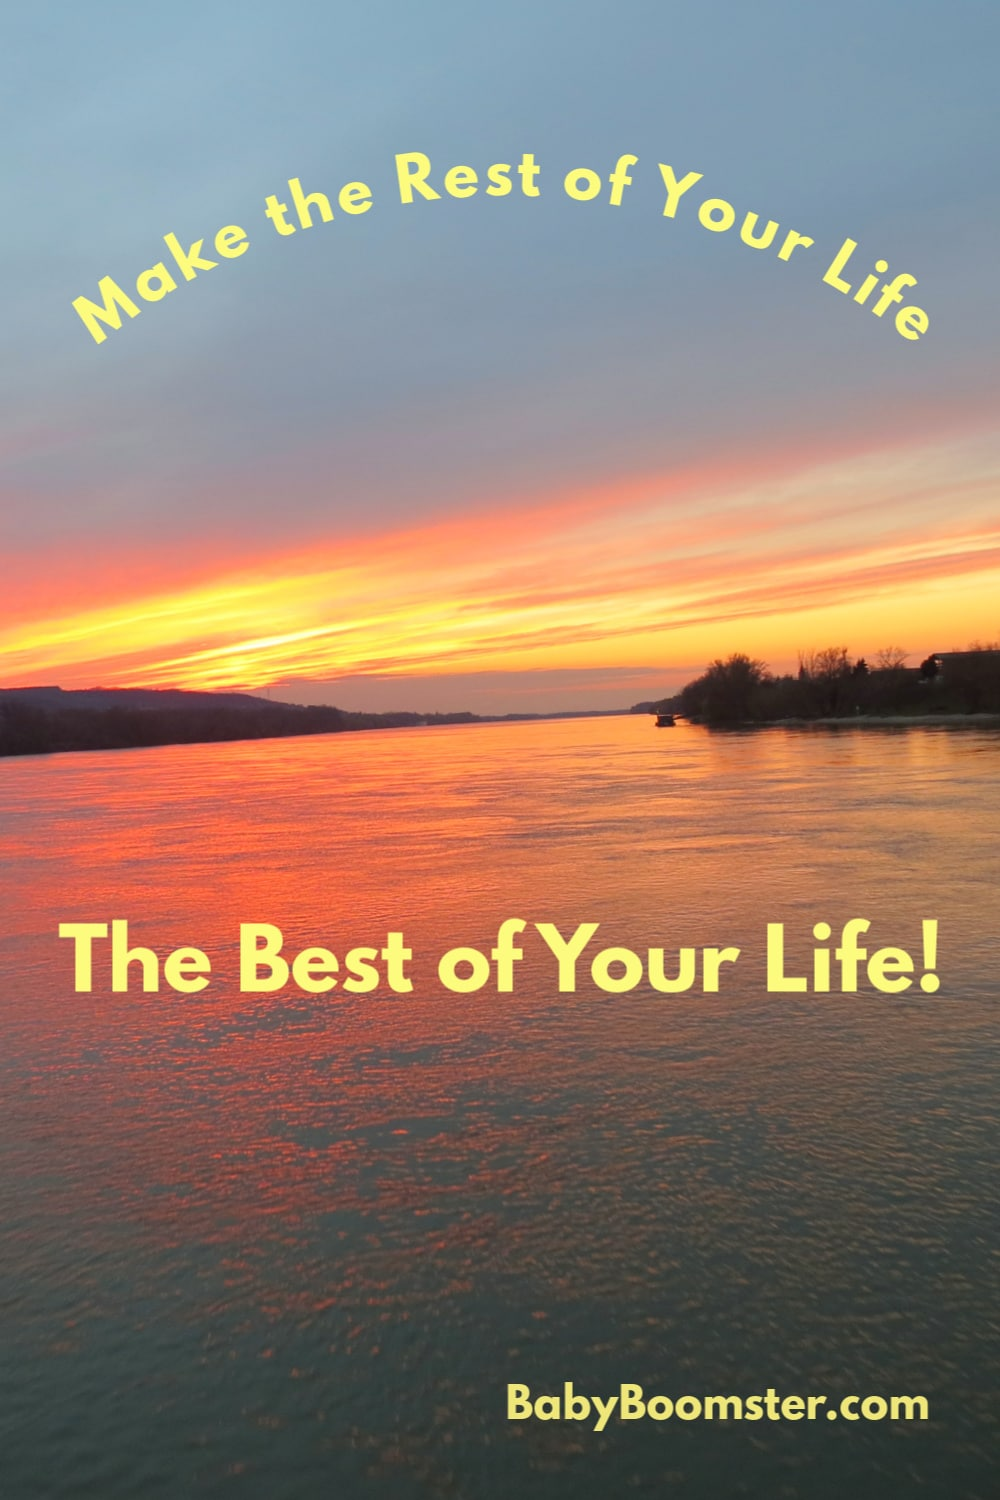 Make the rest of your life, the best of your life - a mantra for Baby Boomers